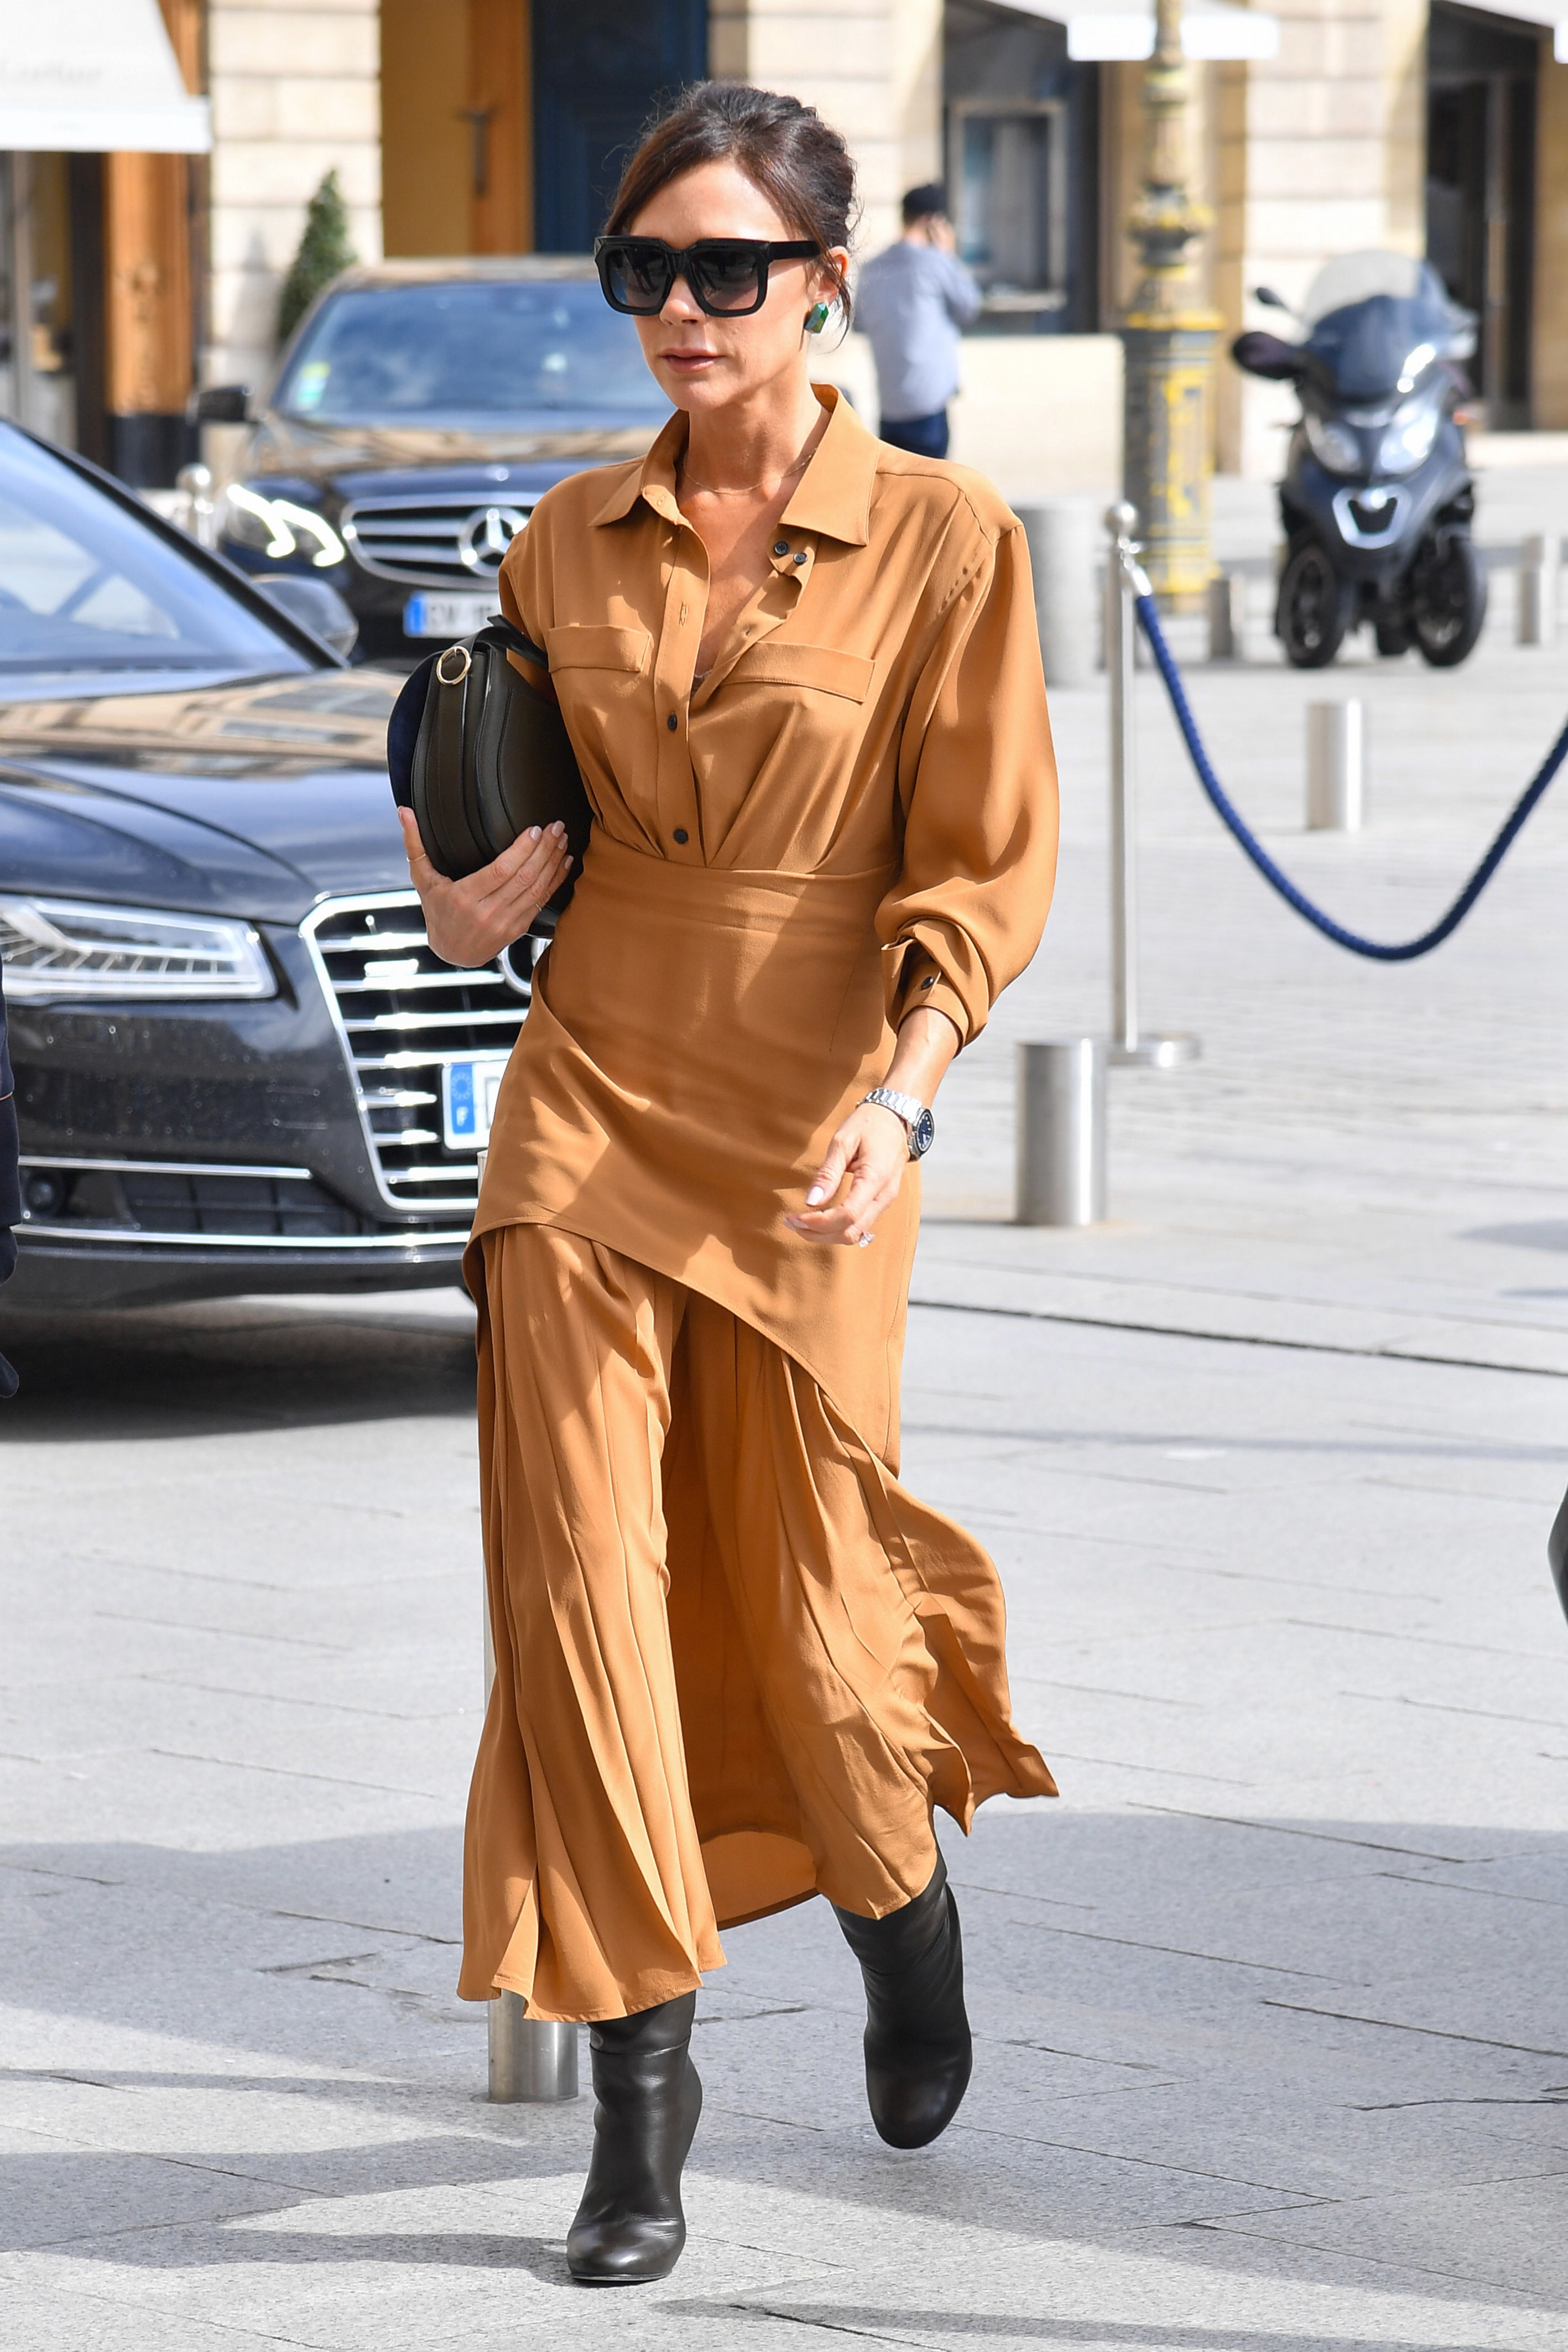 Victoria Beckham steps out in Paris on March 13, 2018.